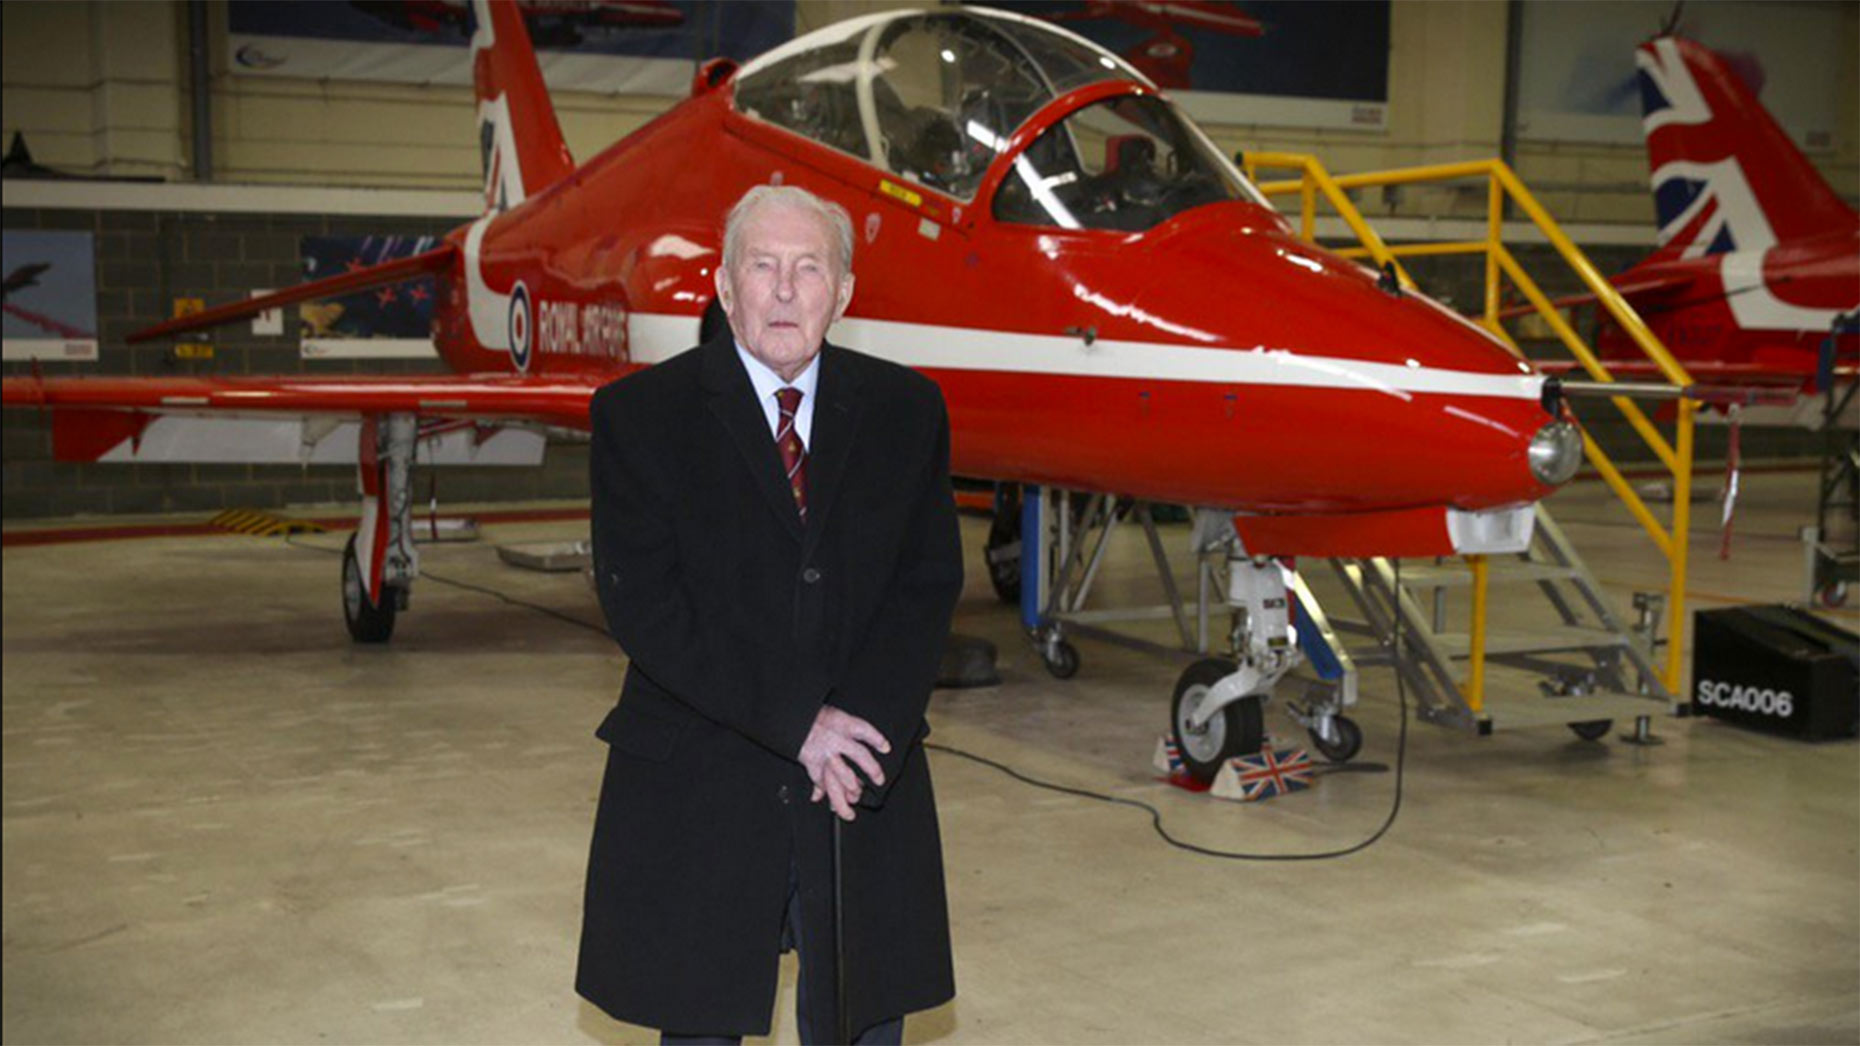 Last surviving dambuster should get a knighthood